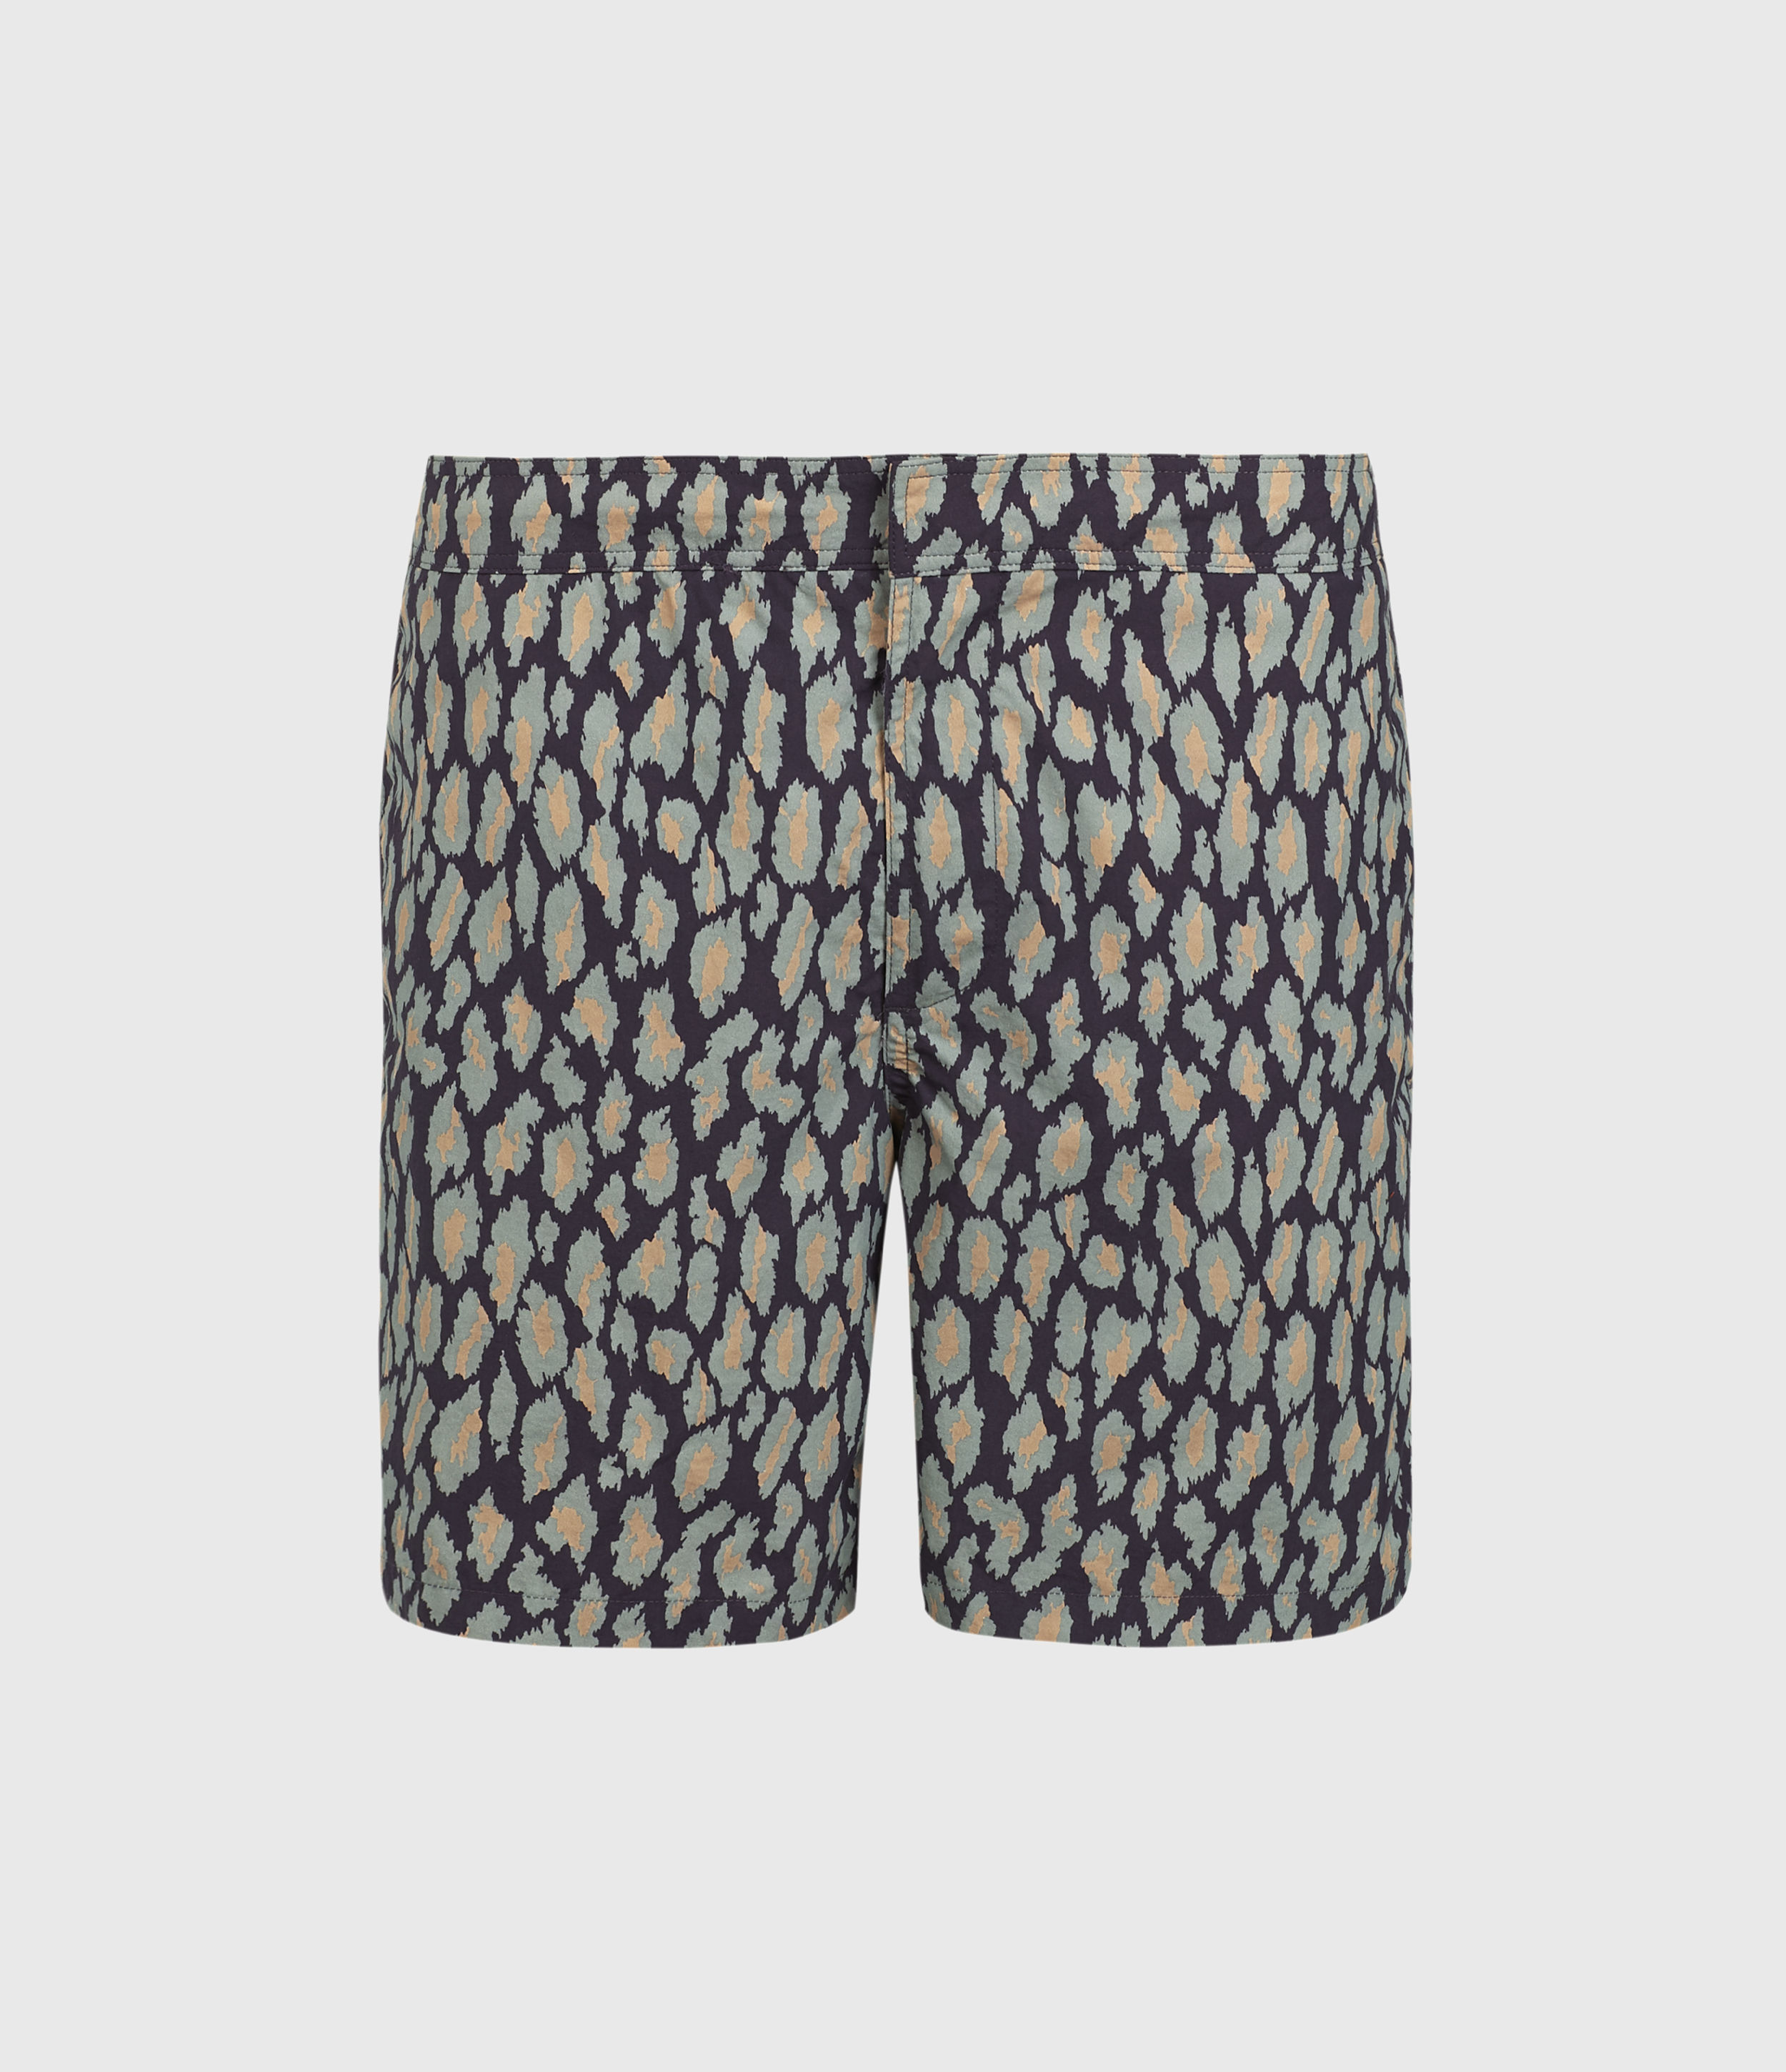 AllSaints Catamere Swim Shorts